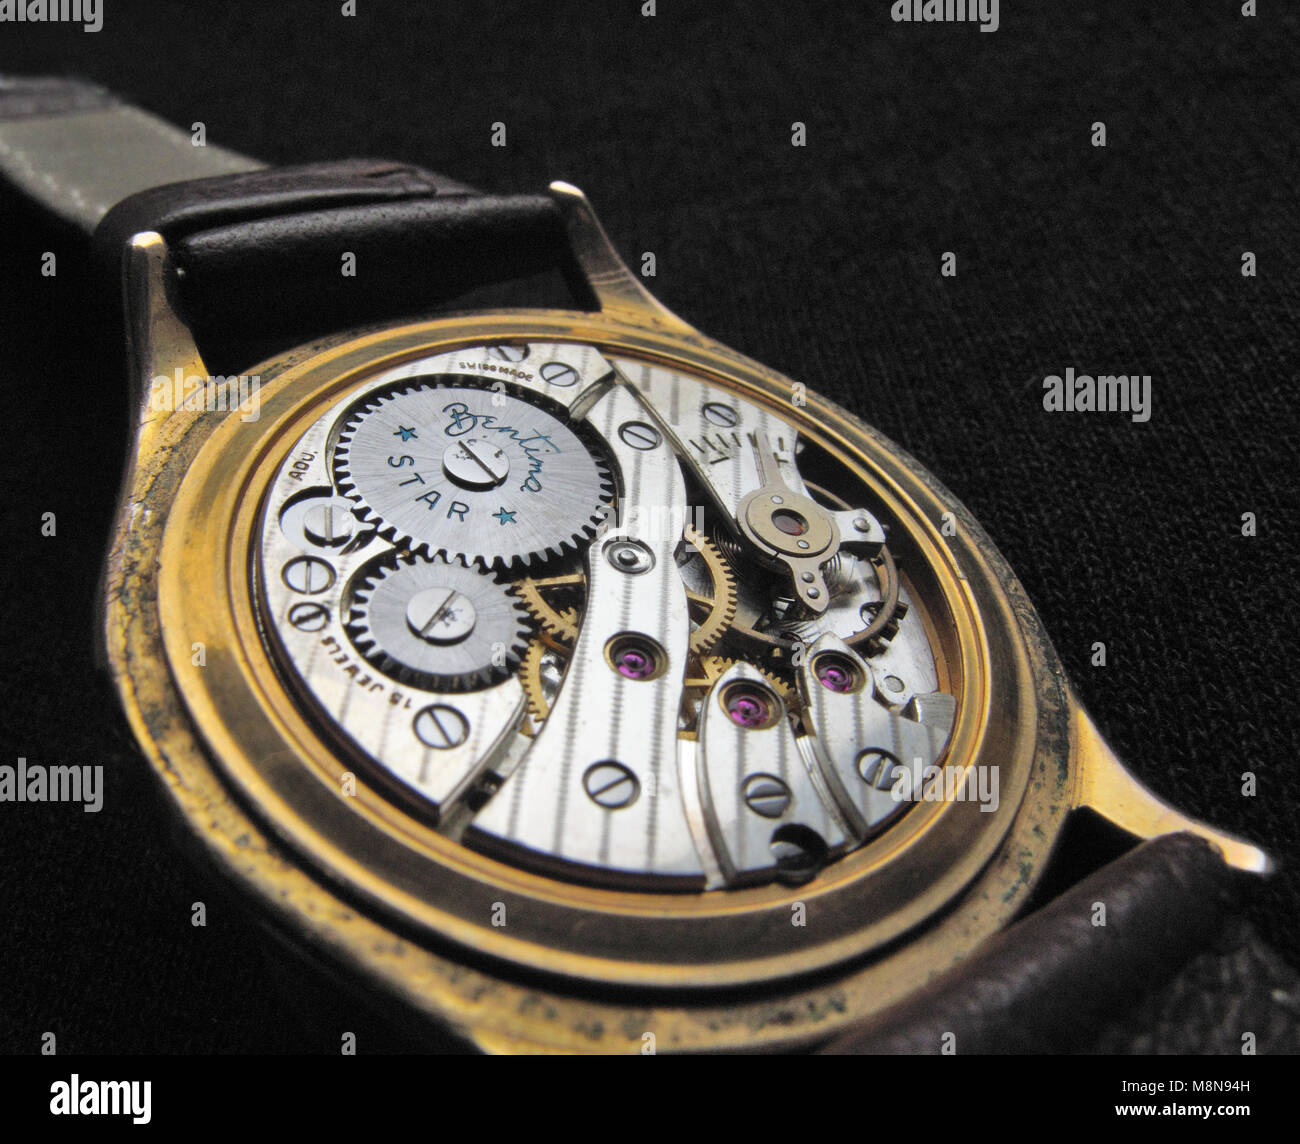 d971abfc830 Analogue Watch Imágenes De Stock   Analogue Watch Fotos De Stock - Alamy